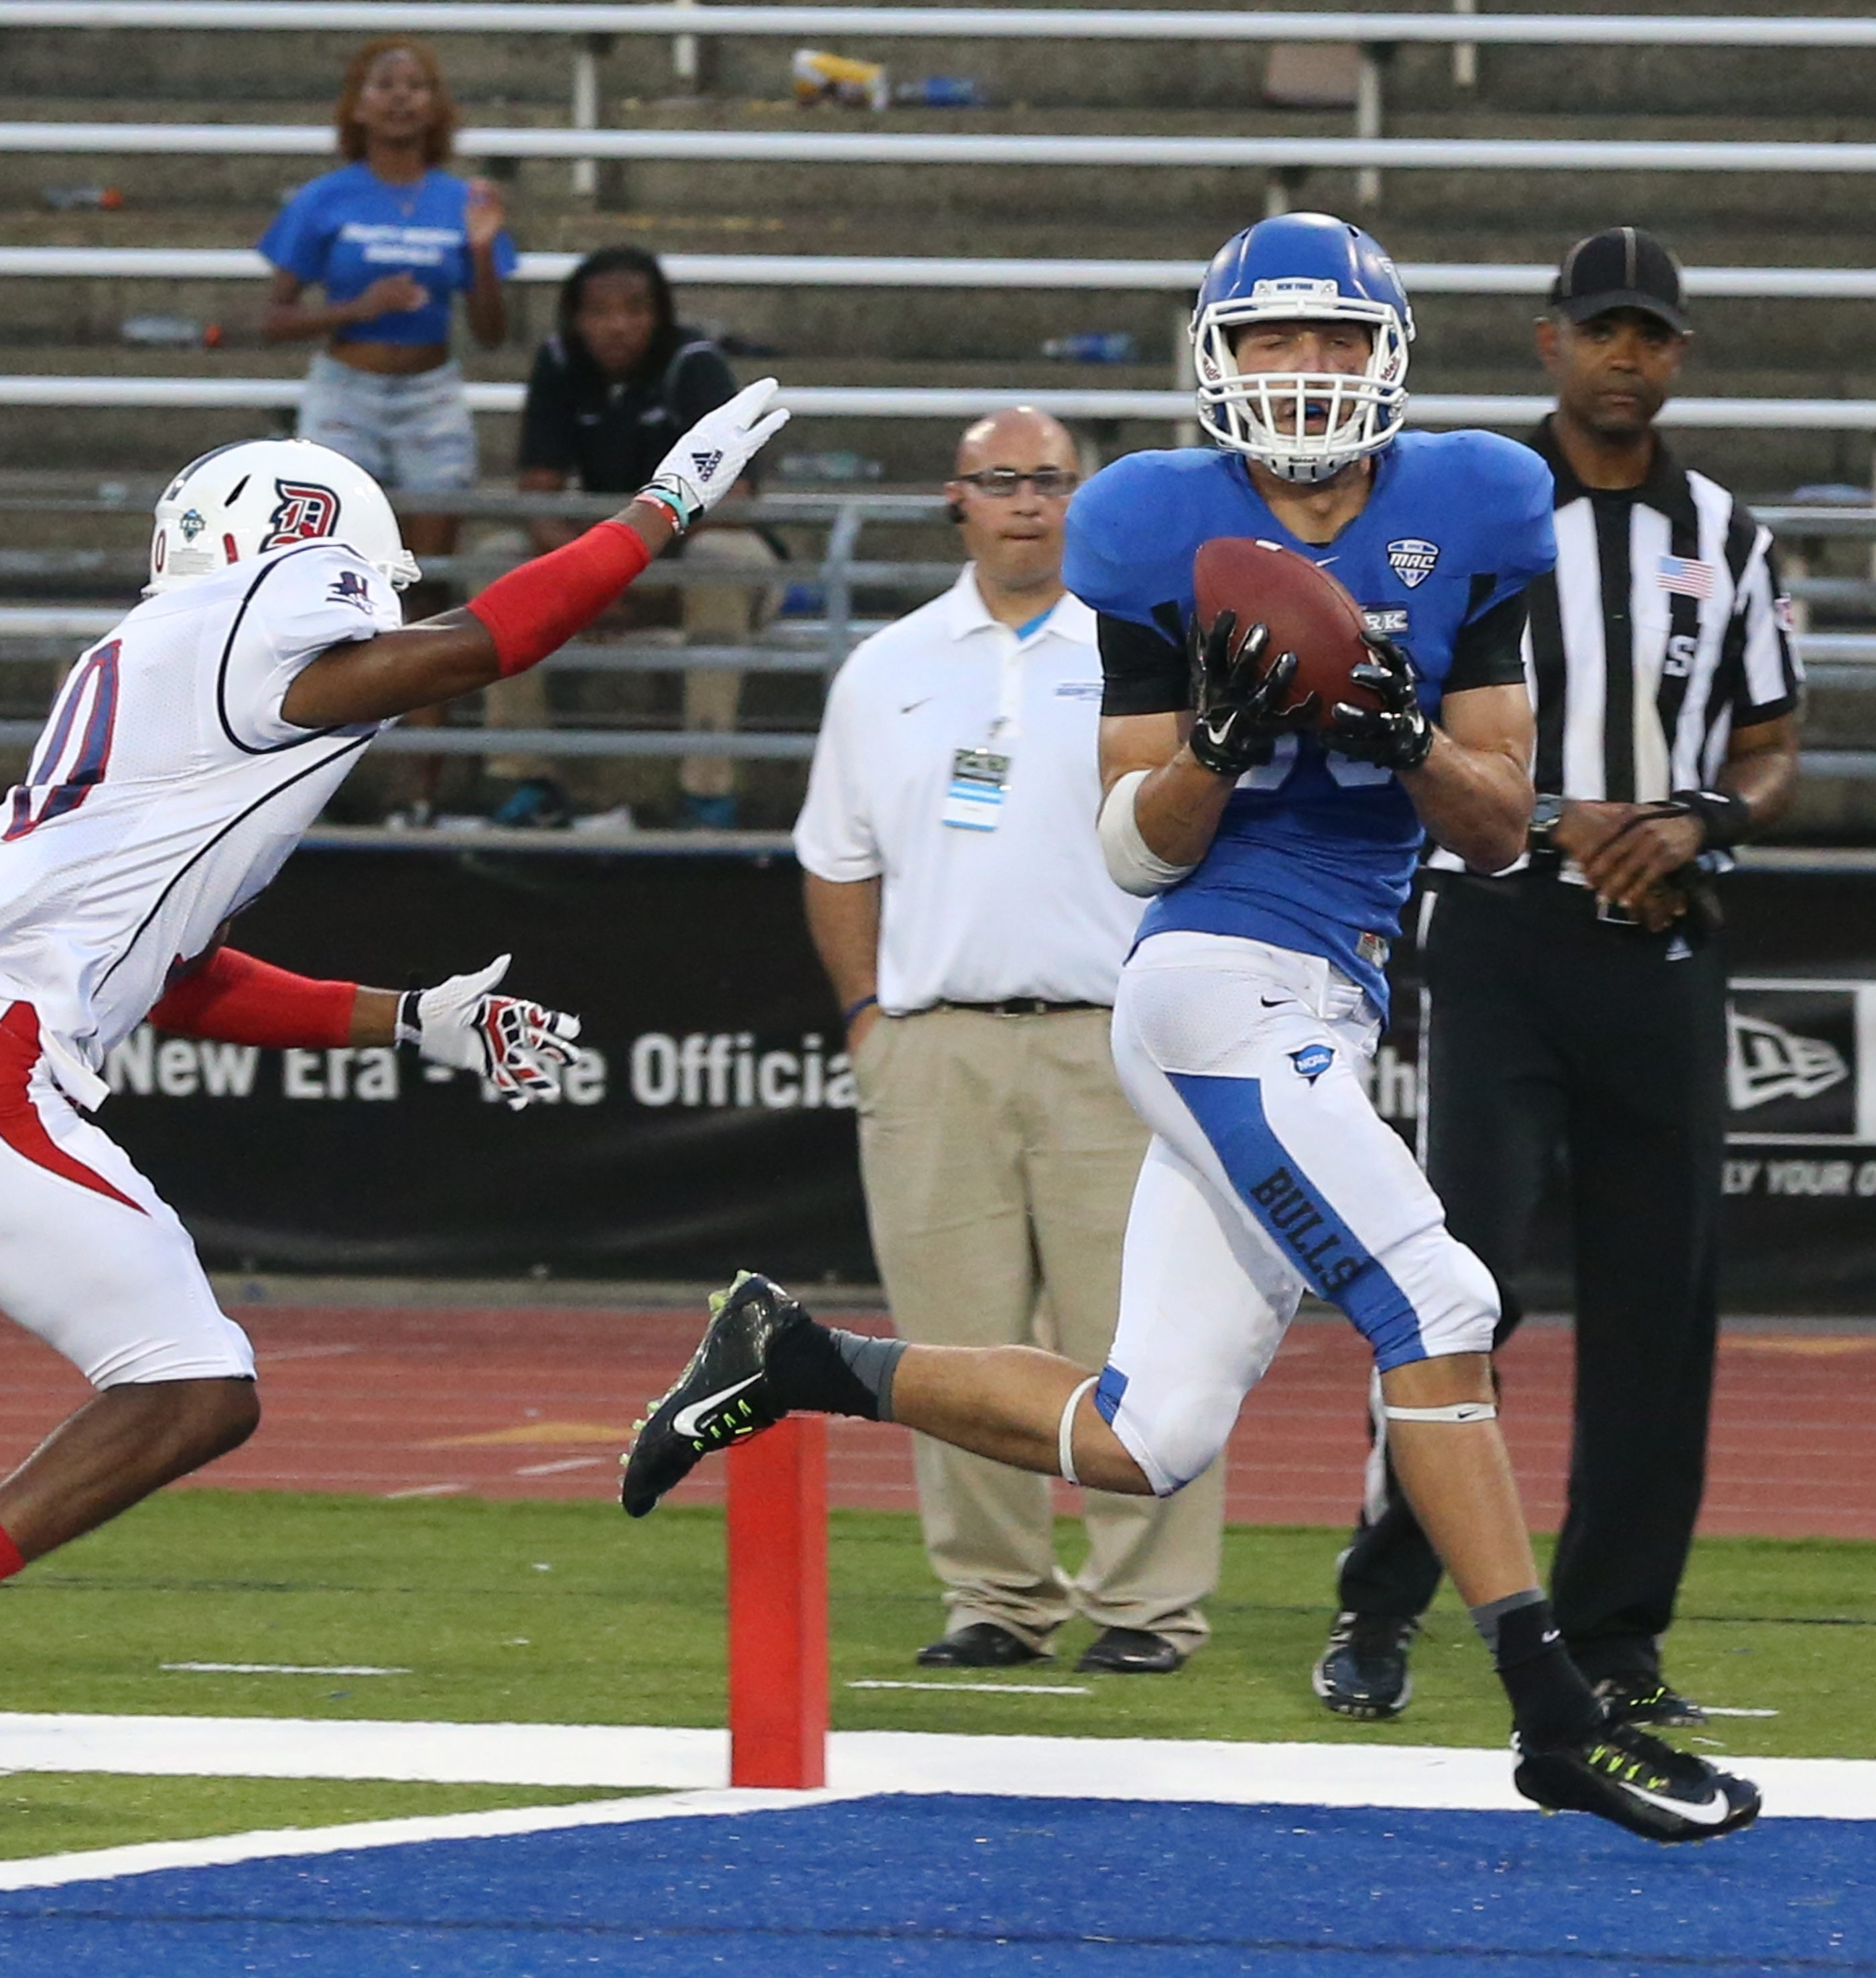 UB receiver Ron Willoughby catches the game-winning touchdown over Duquesne defensive back Malik Shegog (10) in the fourth quarter.